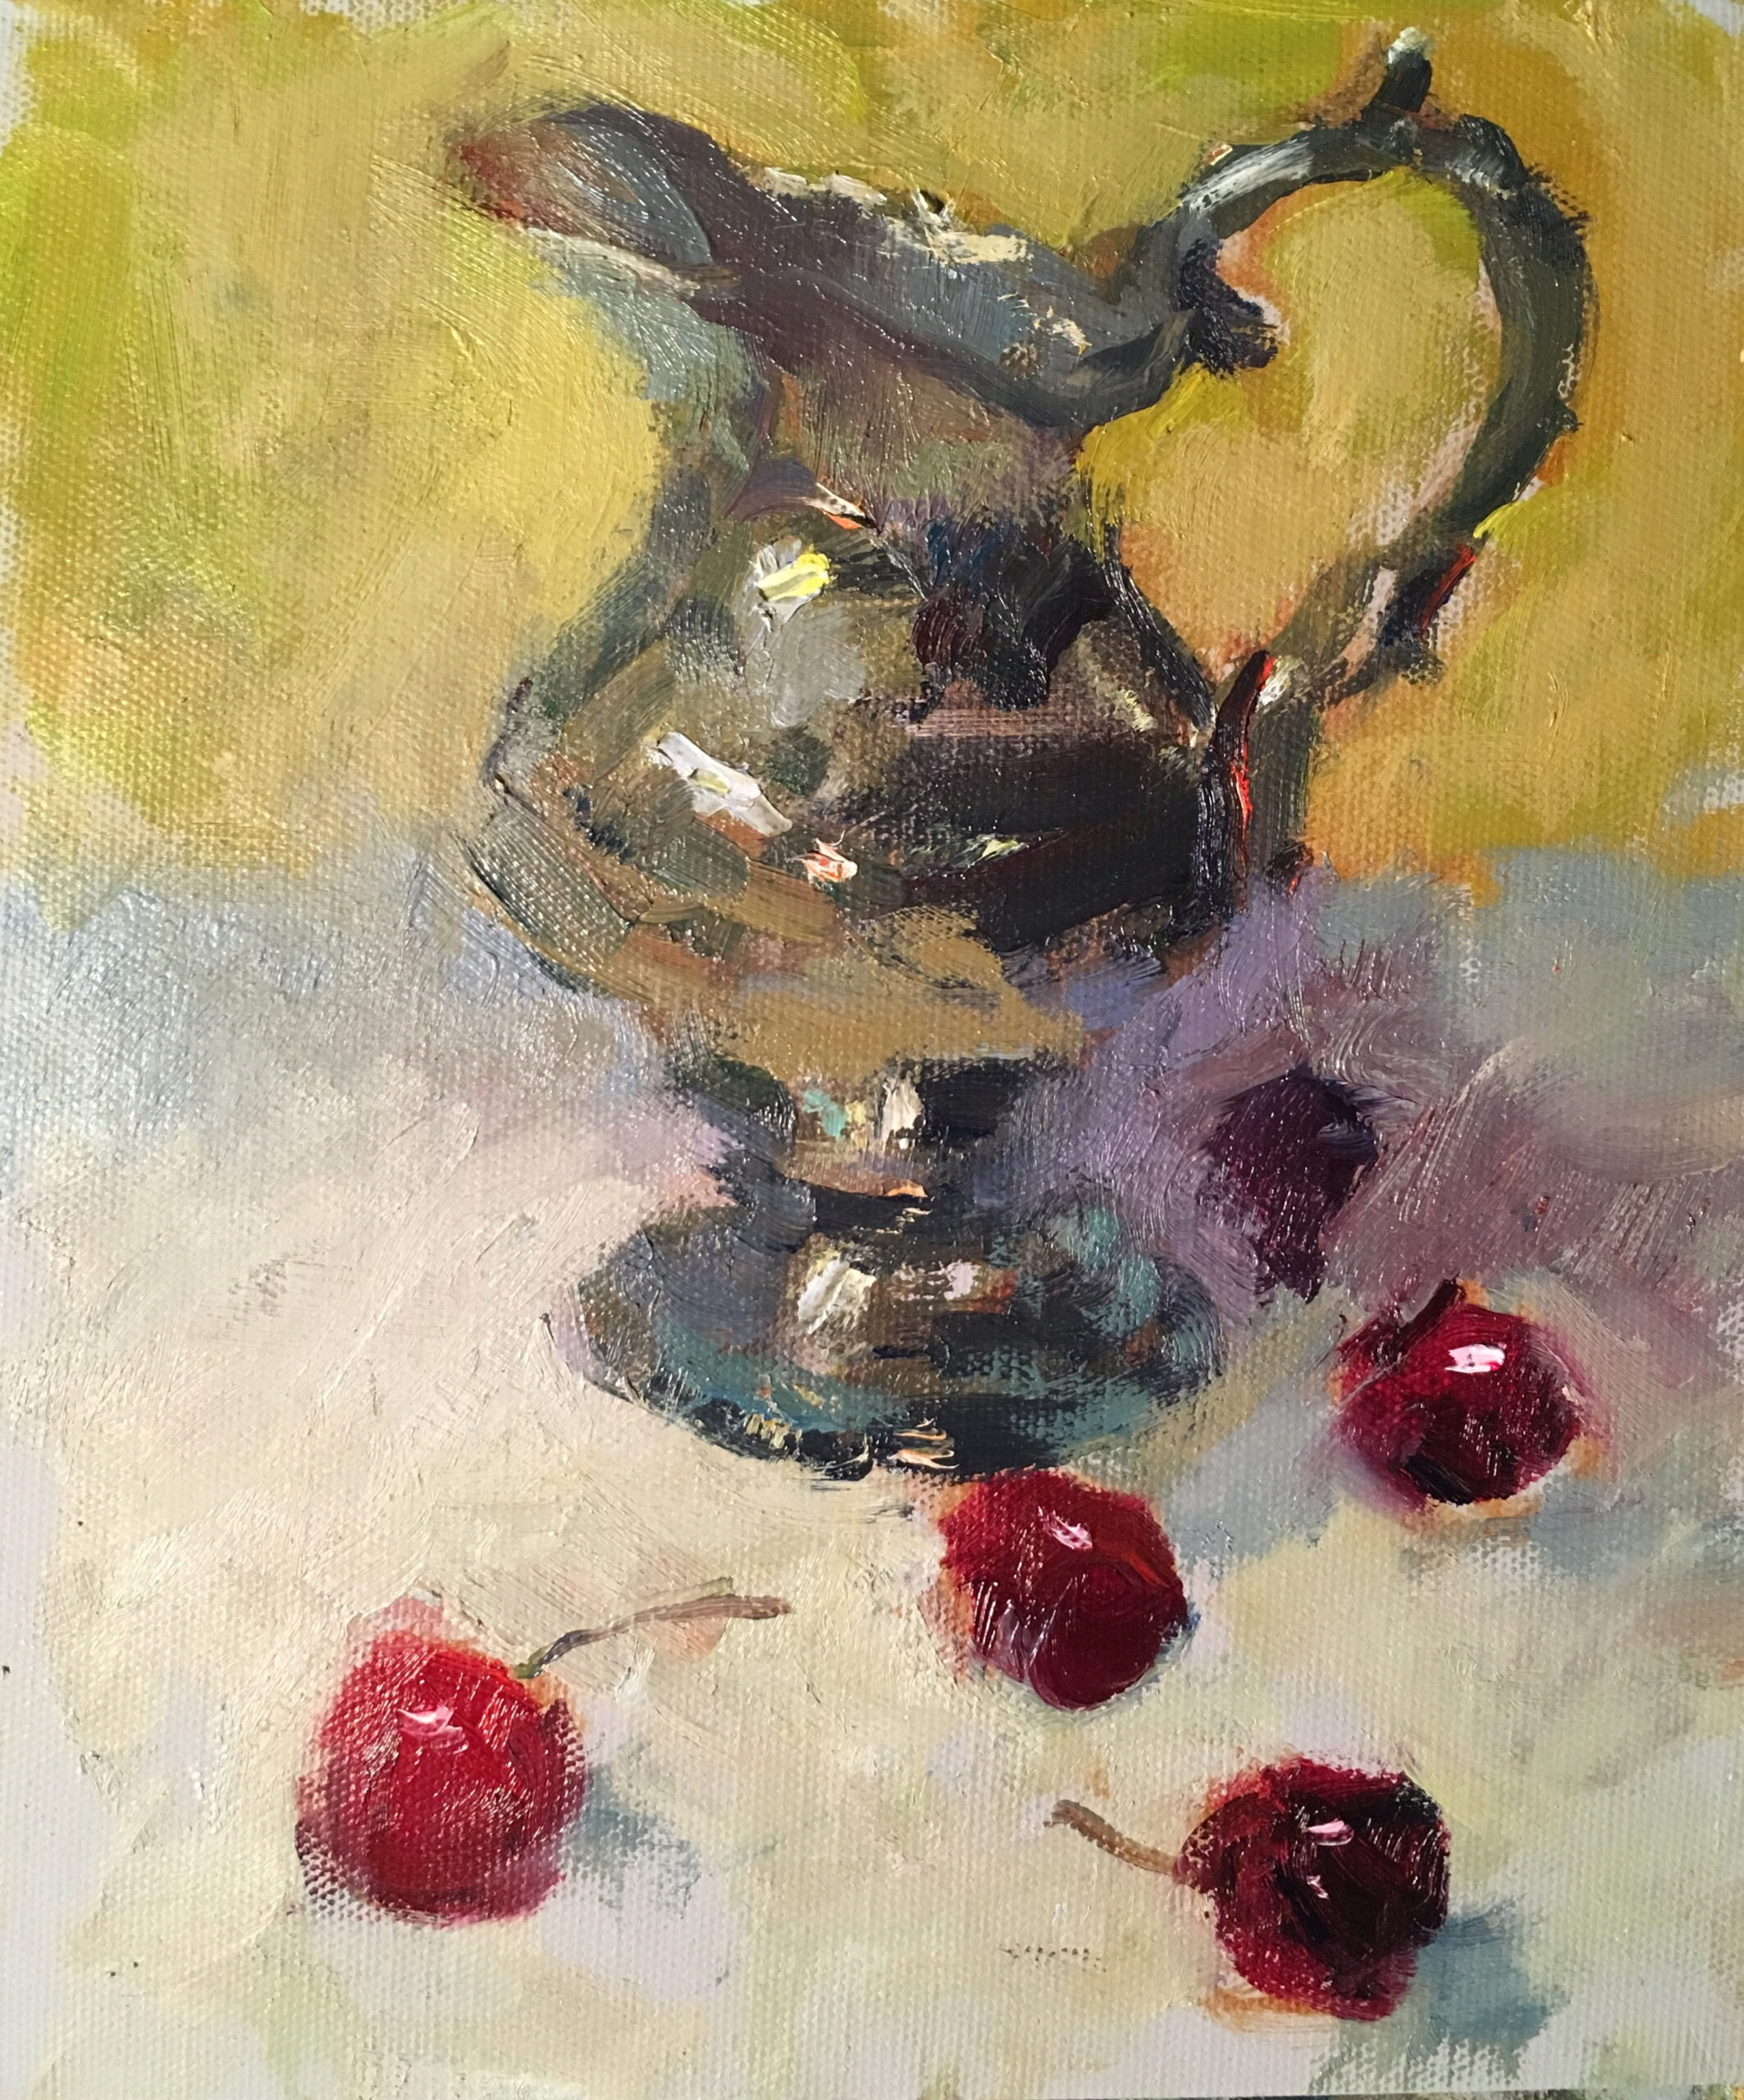 Silver Pitcher and Cherries, Oil on Canvas on Panel, 10 x 8 Inches, by Susan Grisell, $200